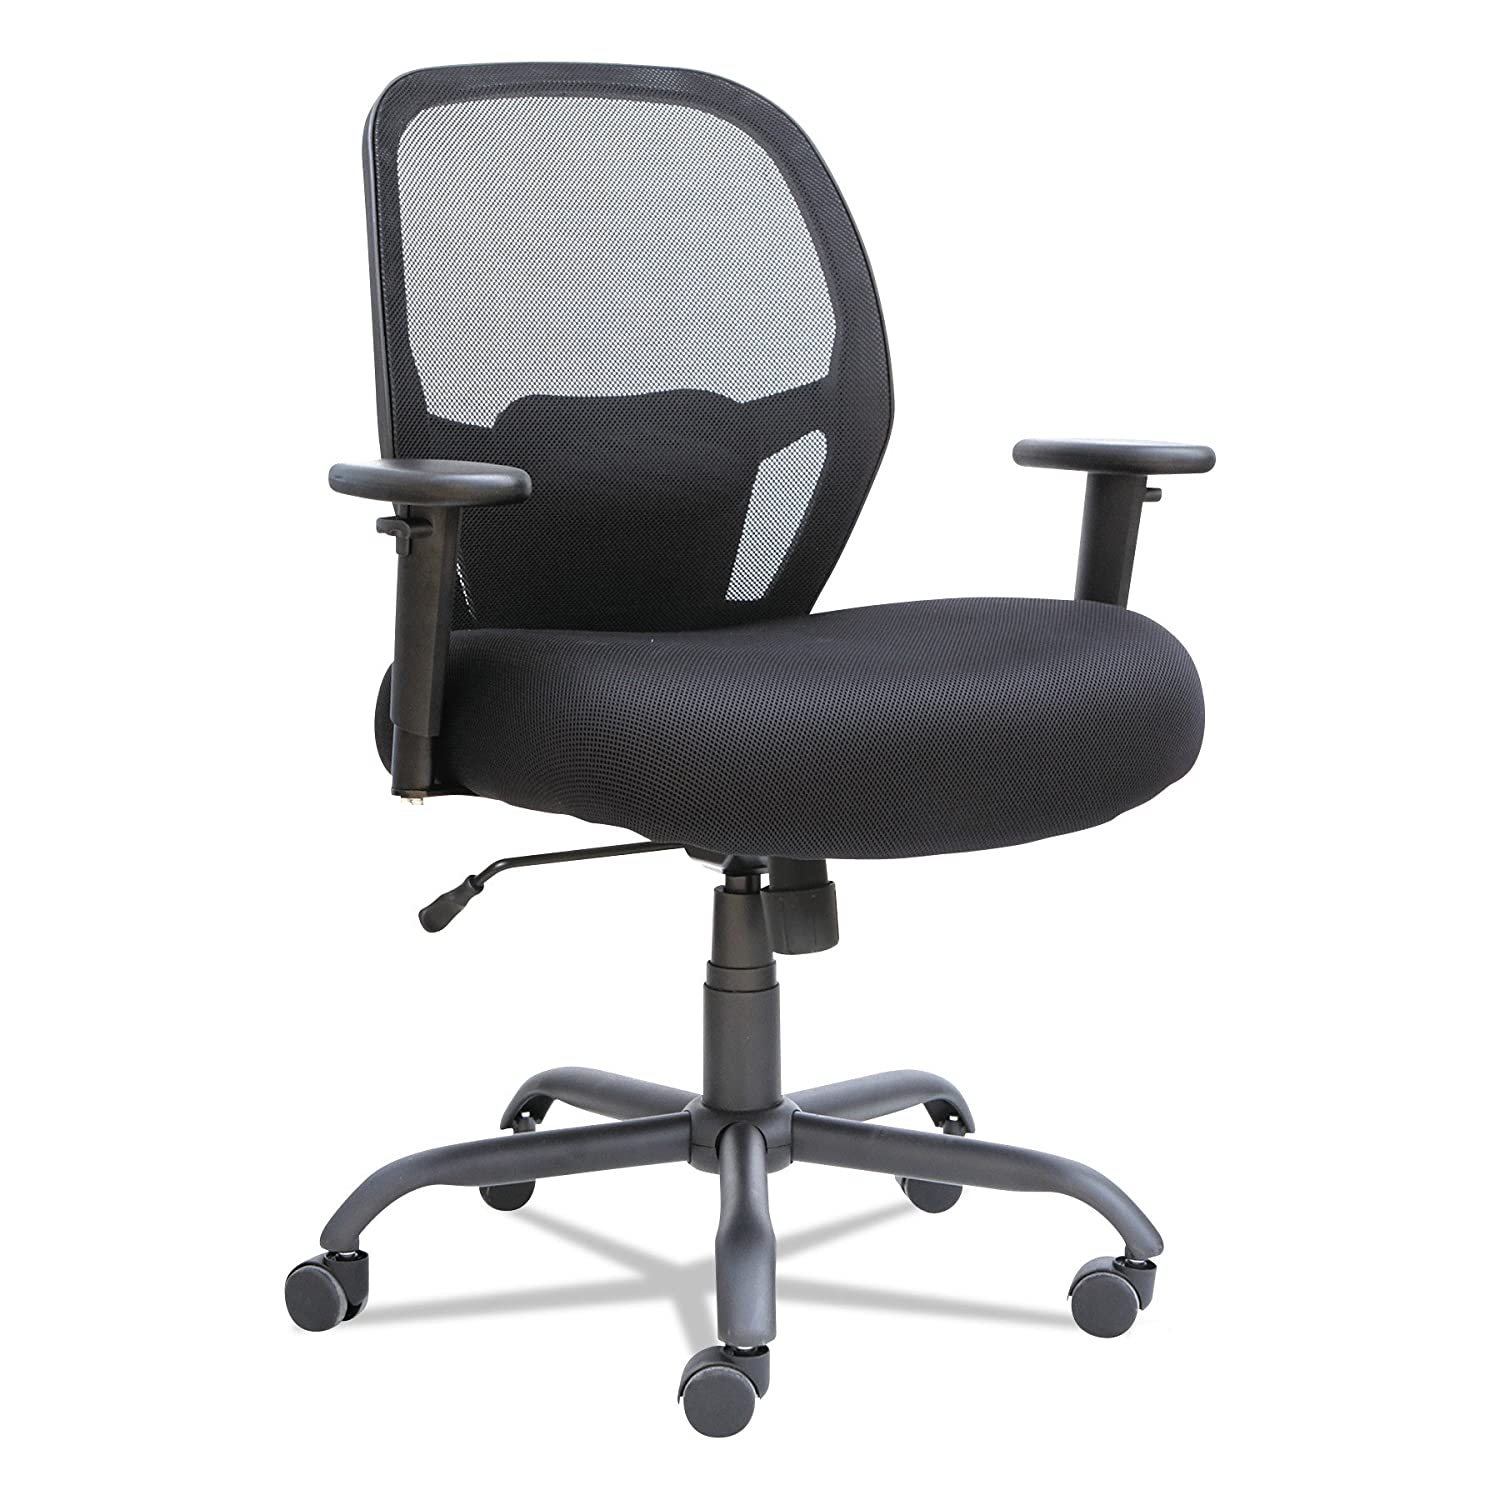 Stupendous Office Chairs For Large People Up To 500 Pounds Heavy Duty Inzonedesignstudio Interior Chair Design Inzonedesignstudiocom